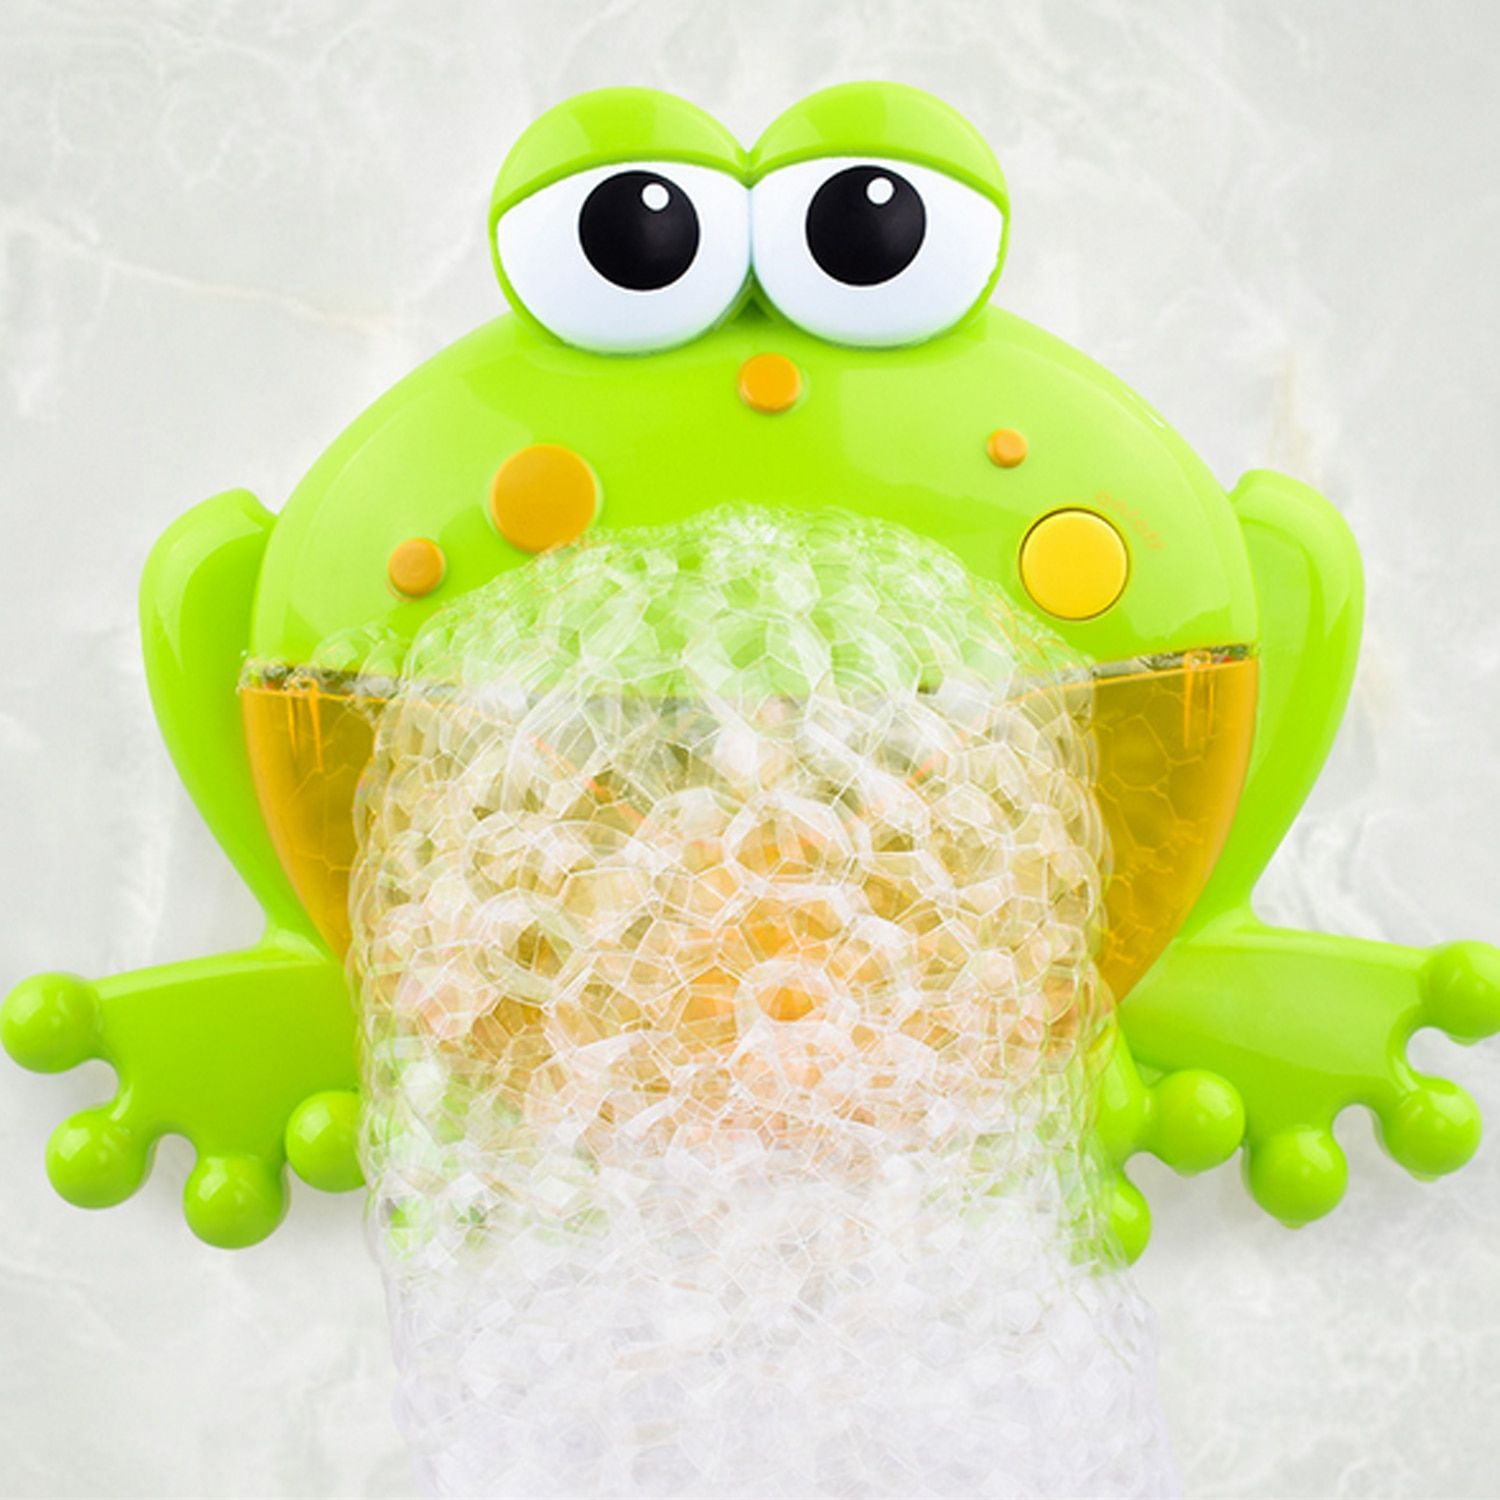 Baby And Toddler Toys Get It At Kidlovestoys Now In 2020 Baby Bath Toys Bath Toys Bathtub Toys